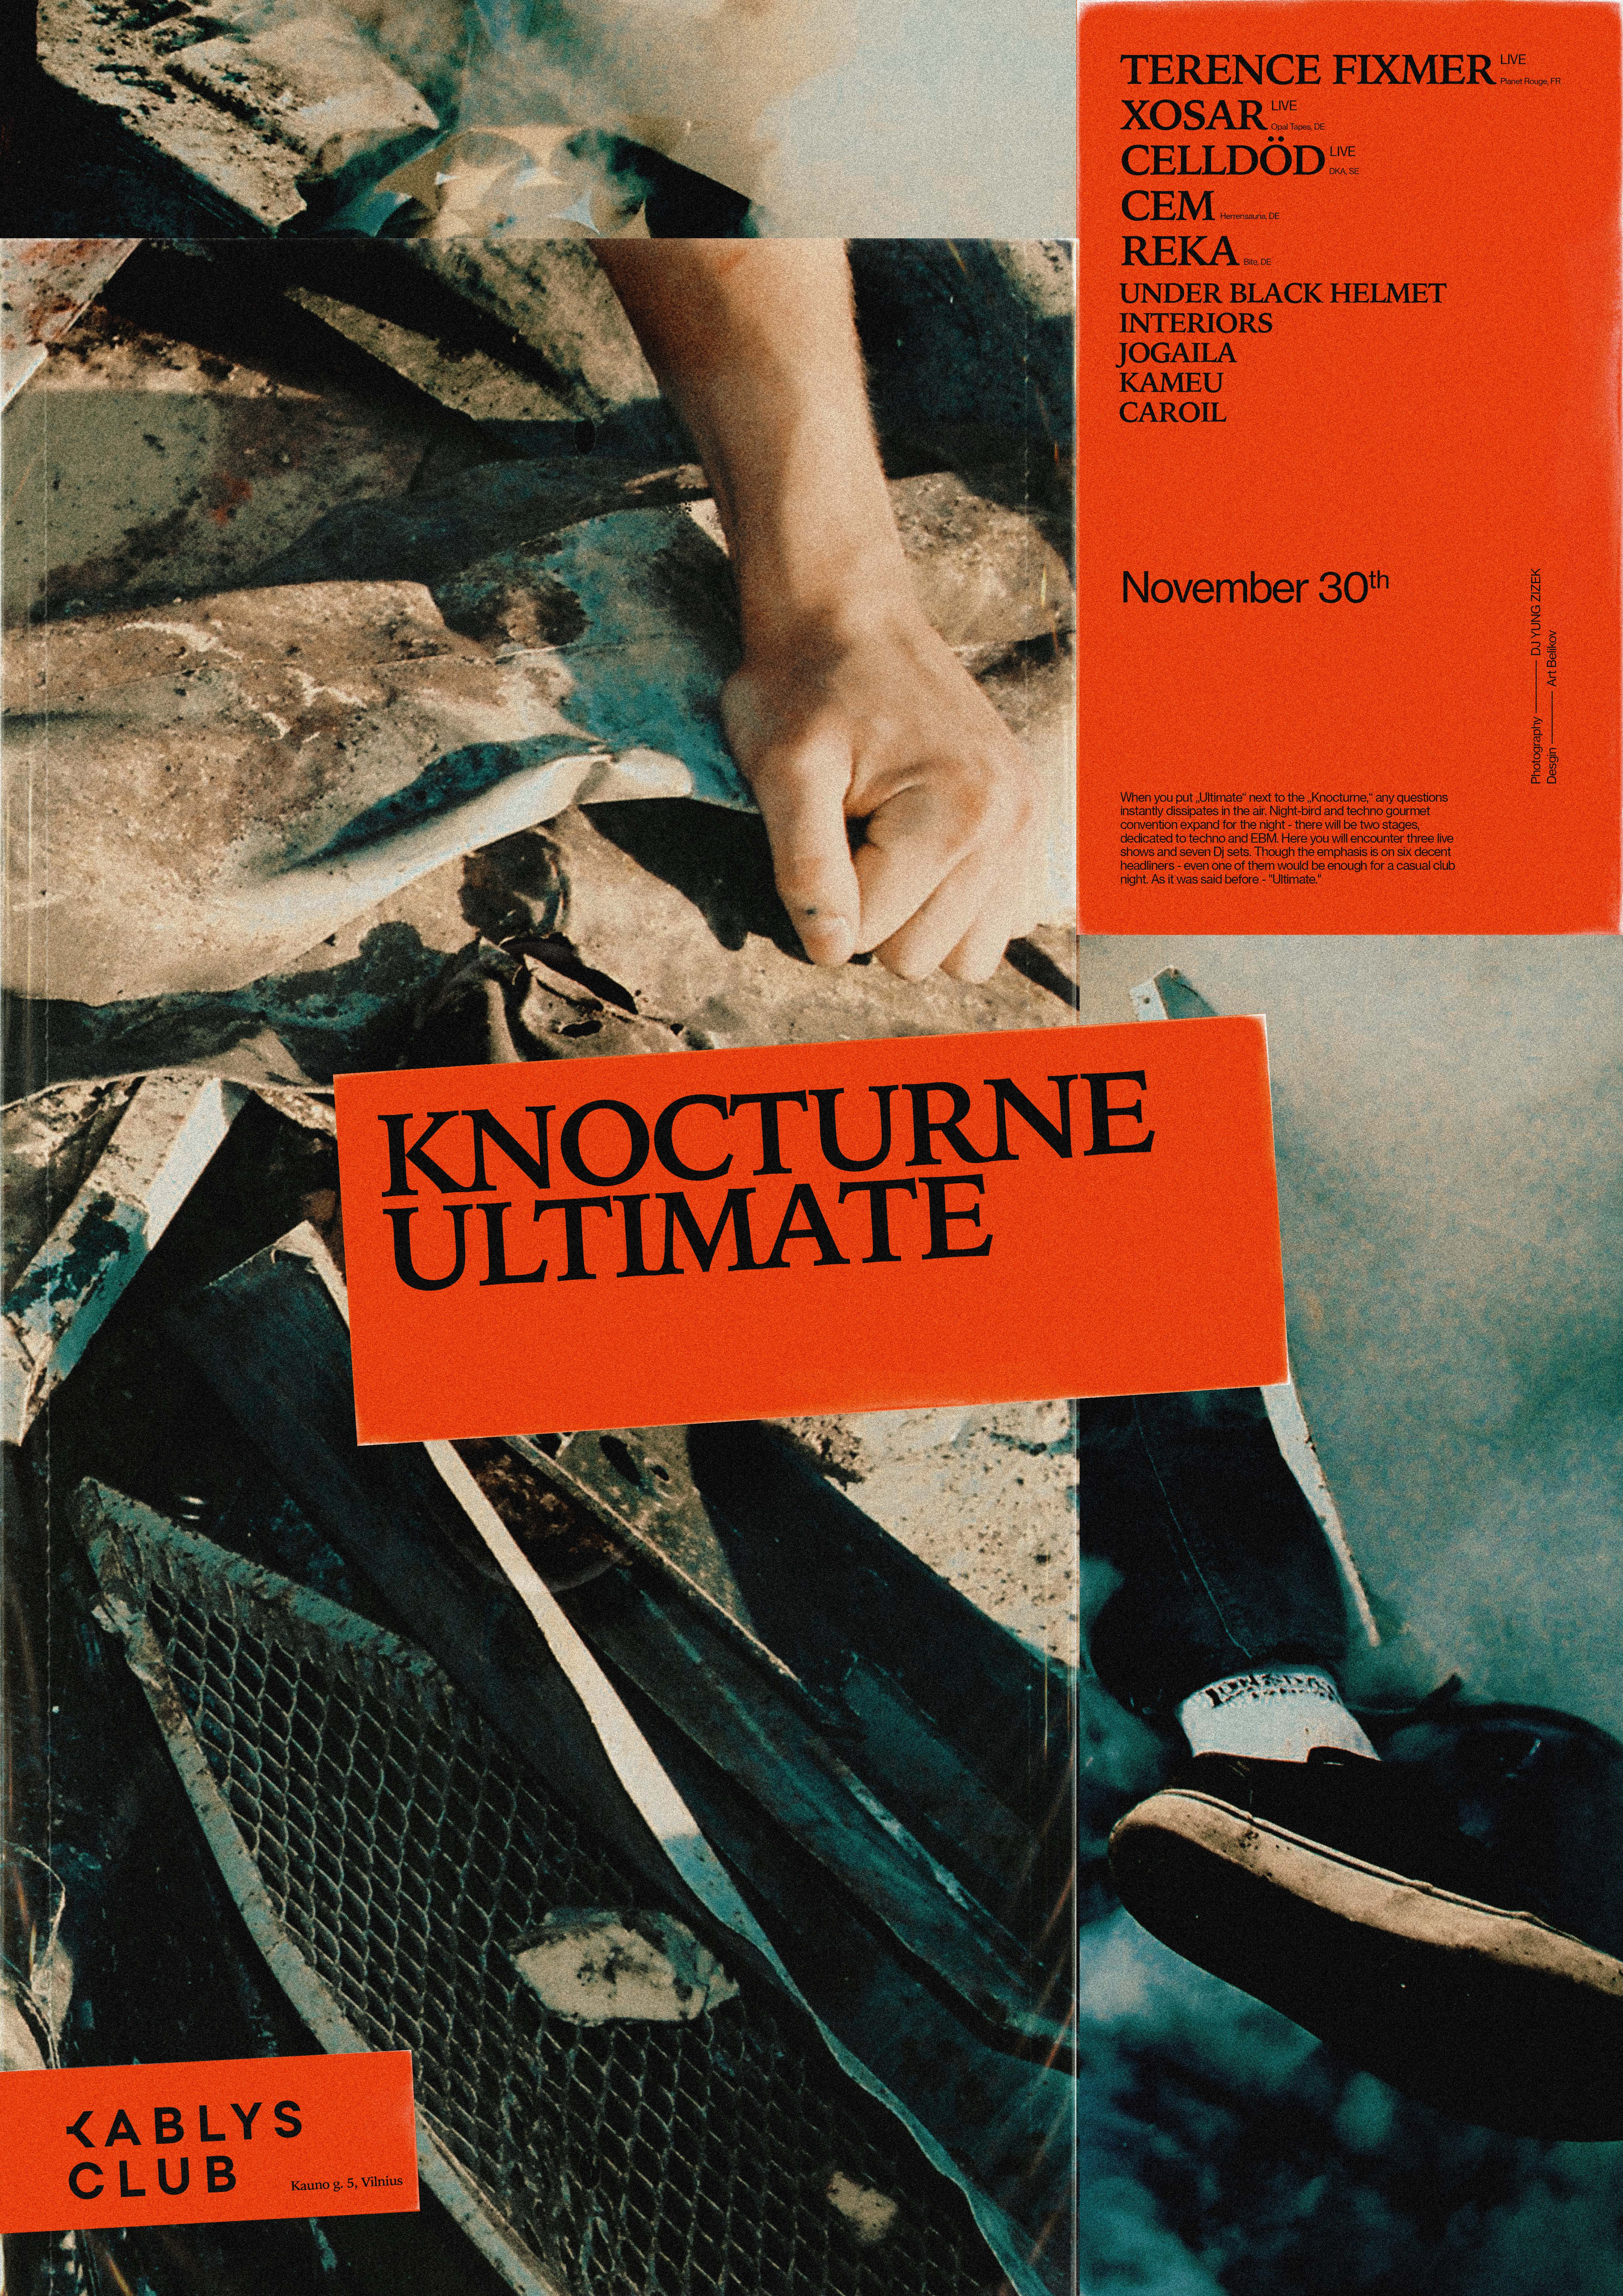 Knocturne Ultimate